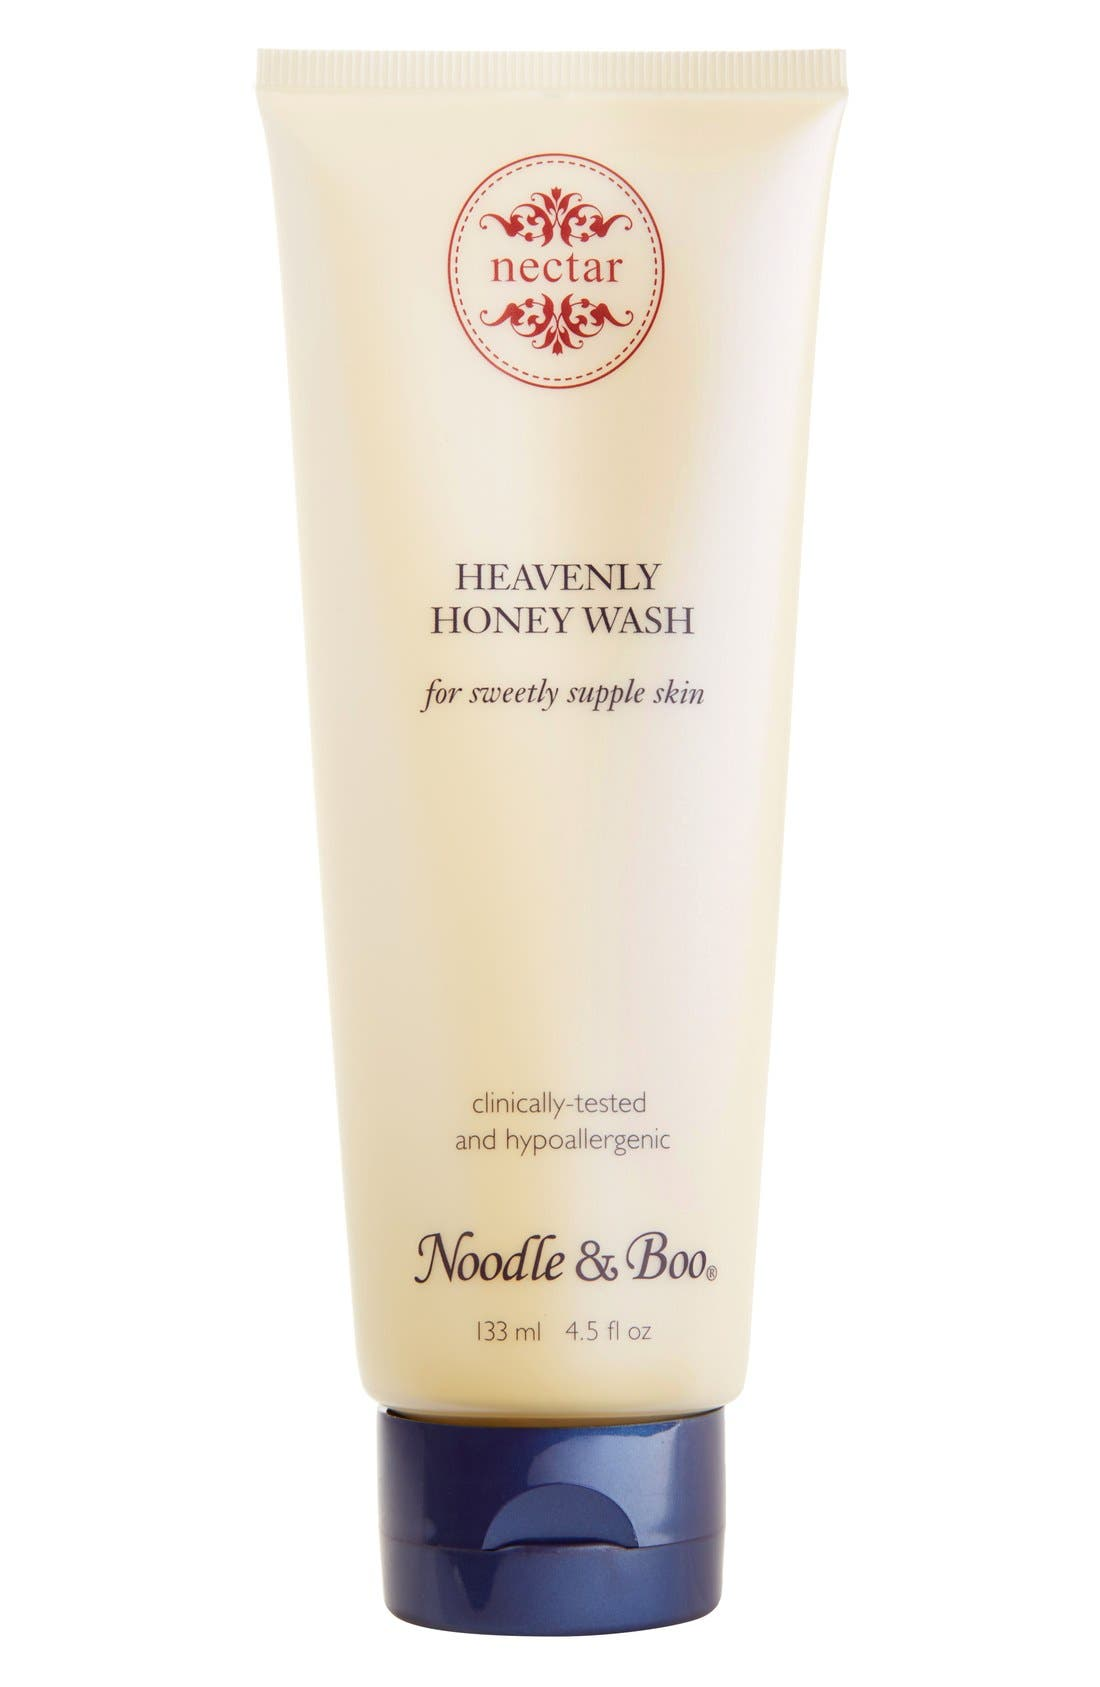 Noodle & Boo 'nectar - Heavenly Honey' Body Wash